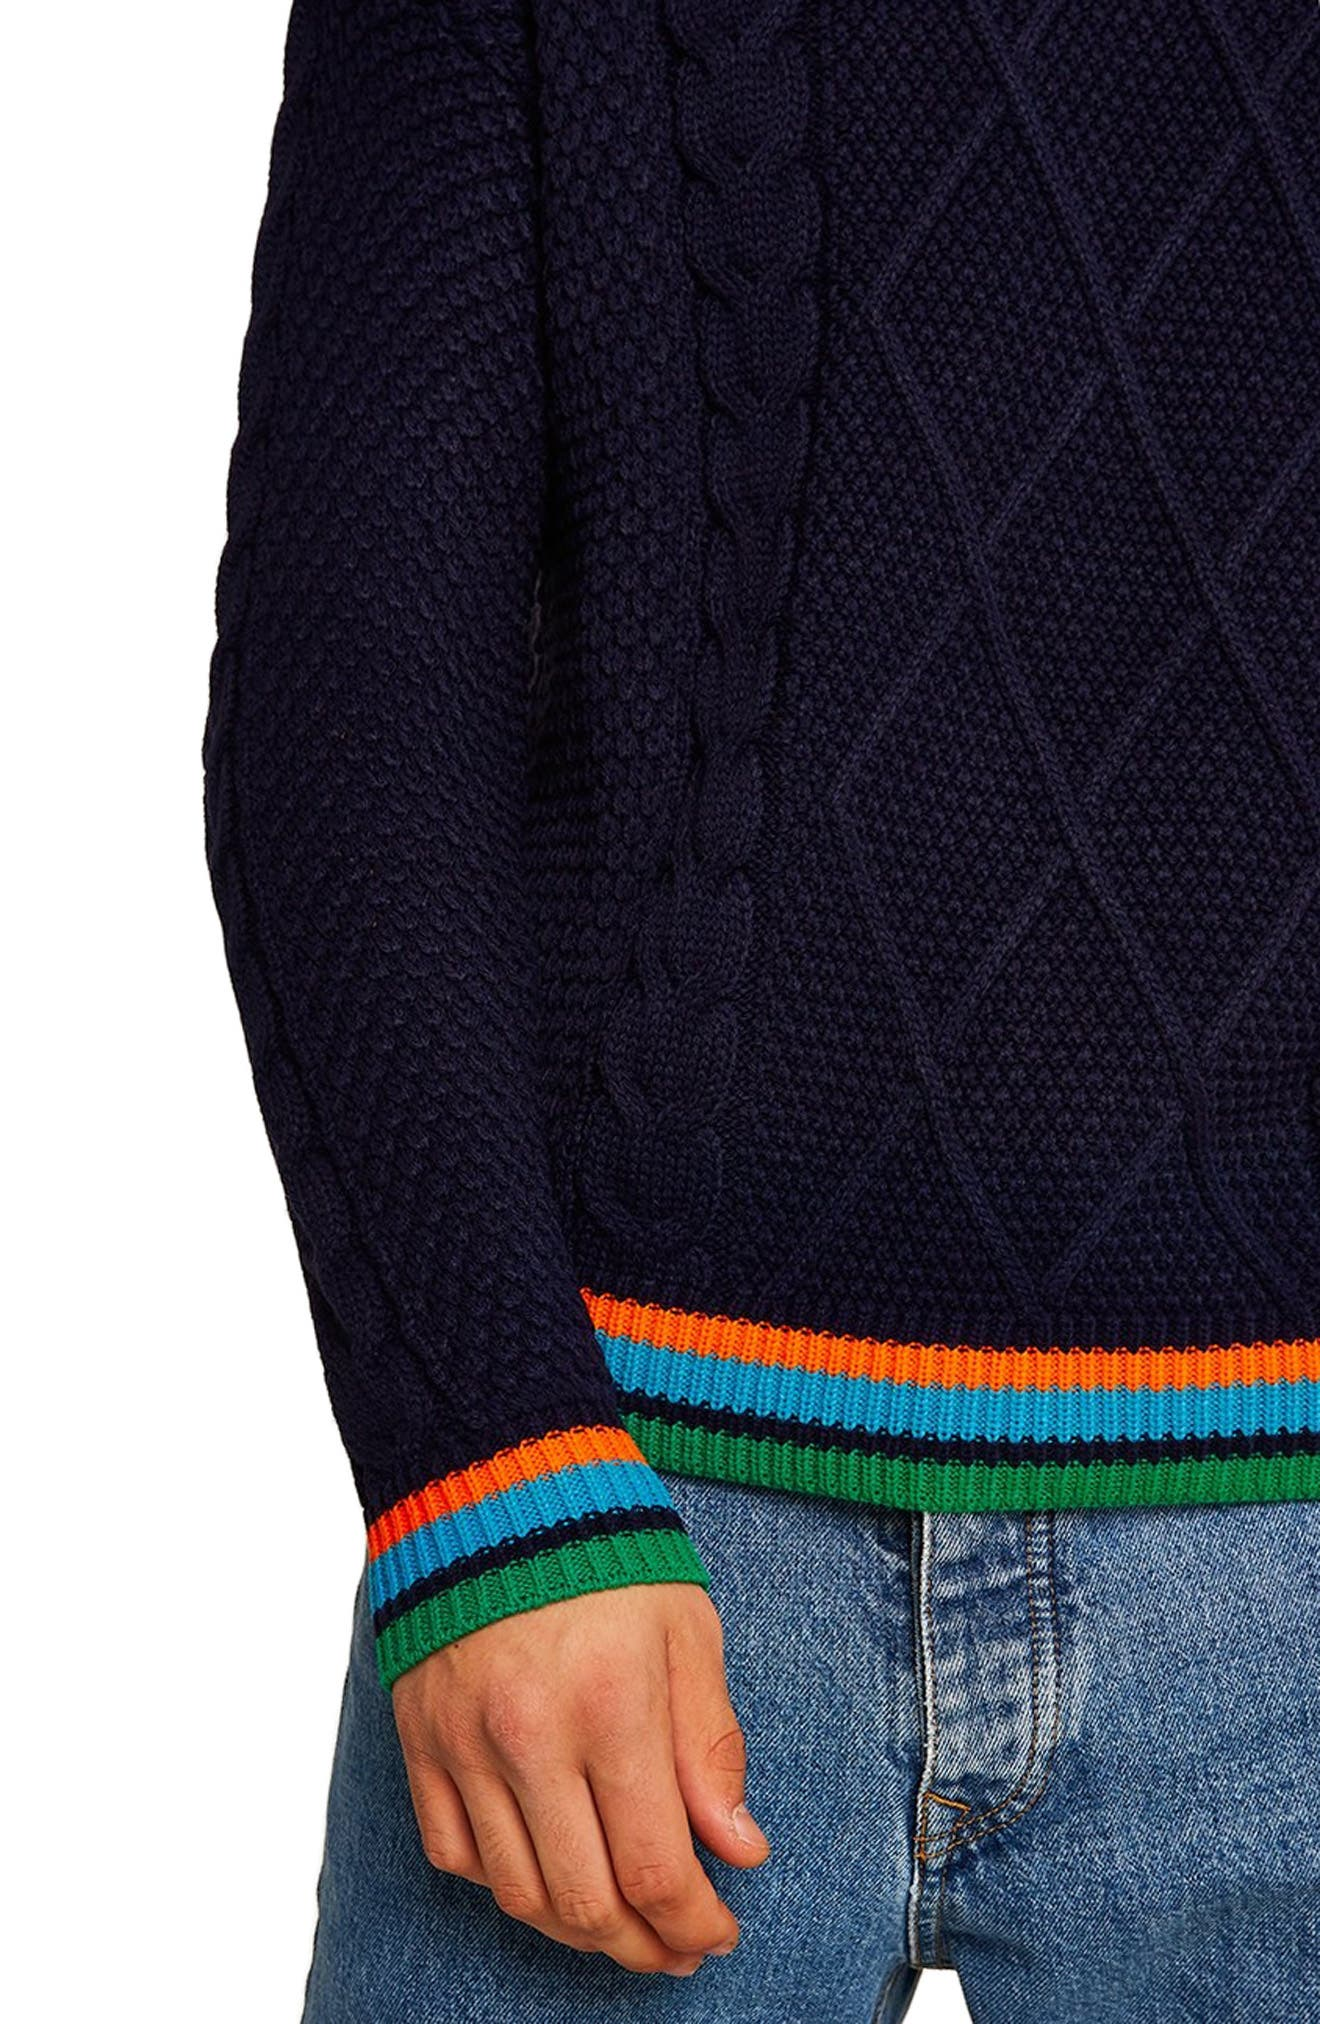 Classic Fit Cable Knit Sweater,                             Alternate thumbnail 3, color,                             411